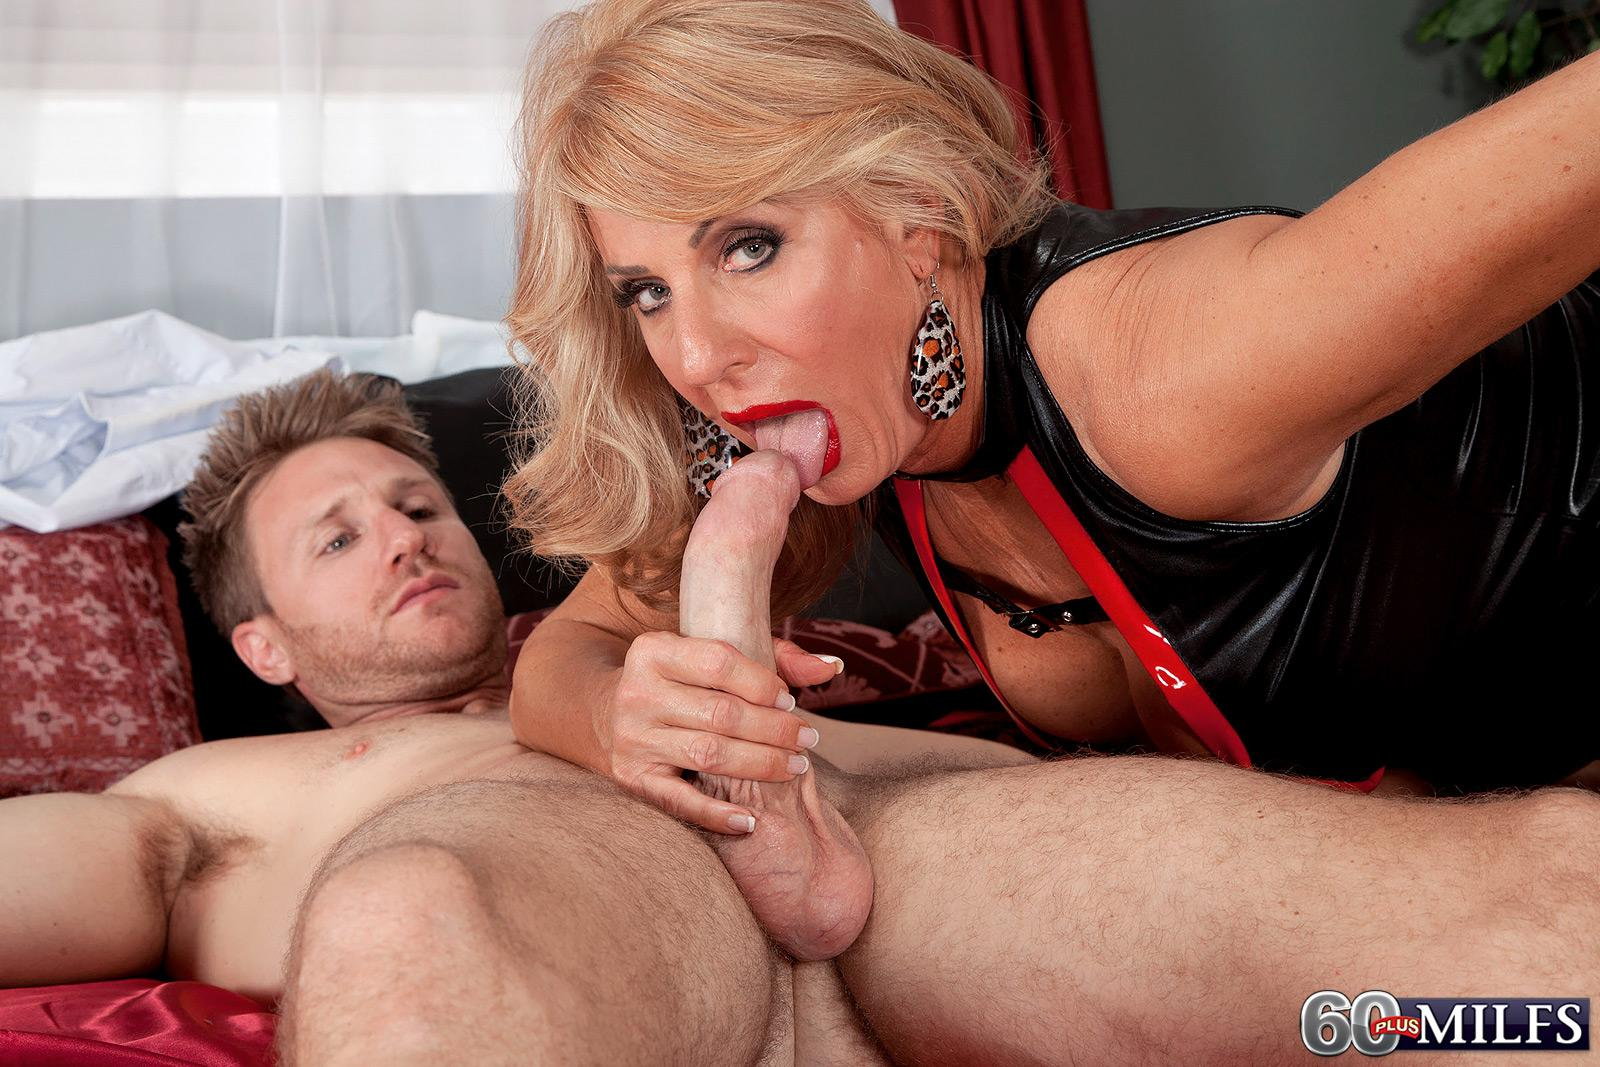 Skinny blond grannie Phoenix Skye giving monster-sized wood HJ and blow-job in high heels